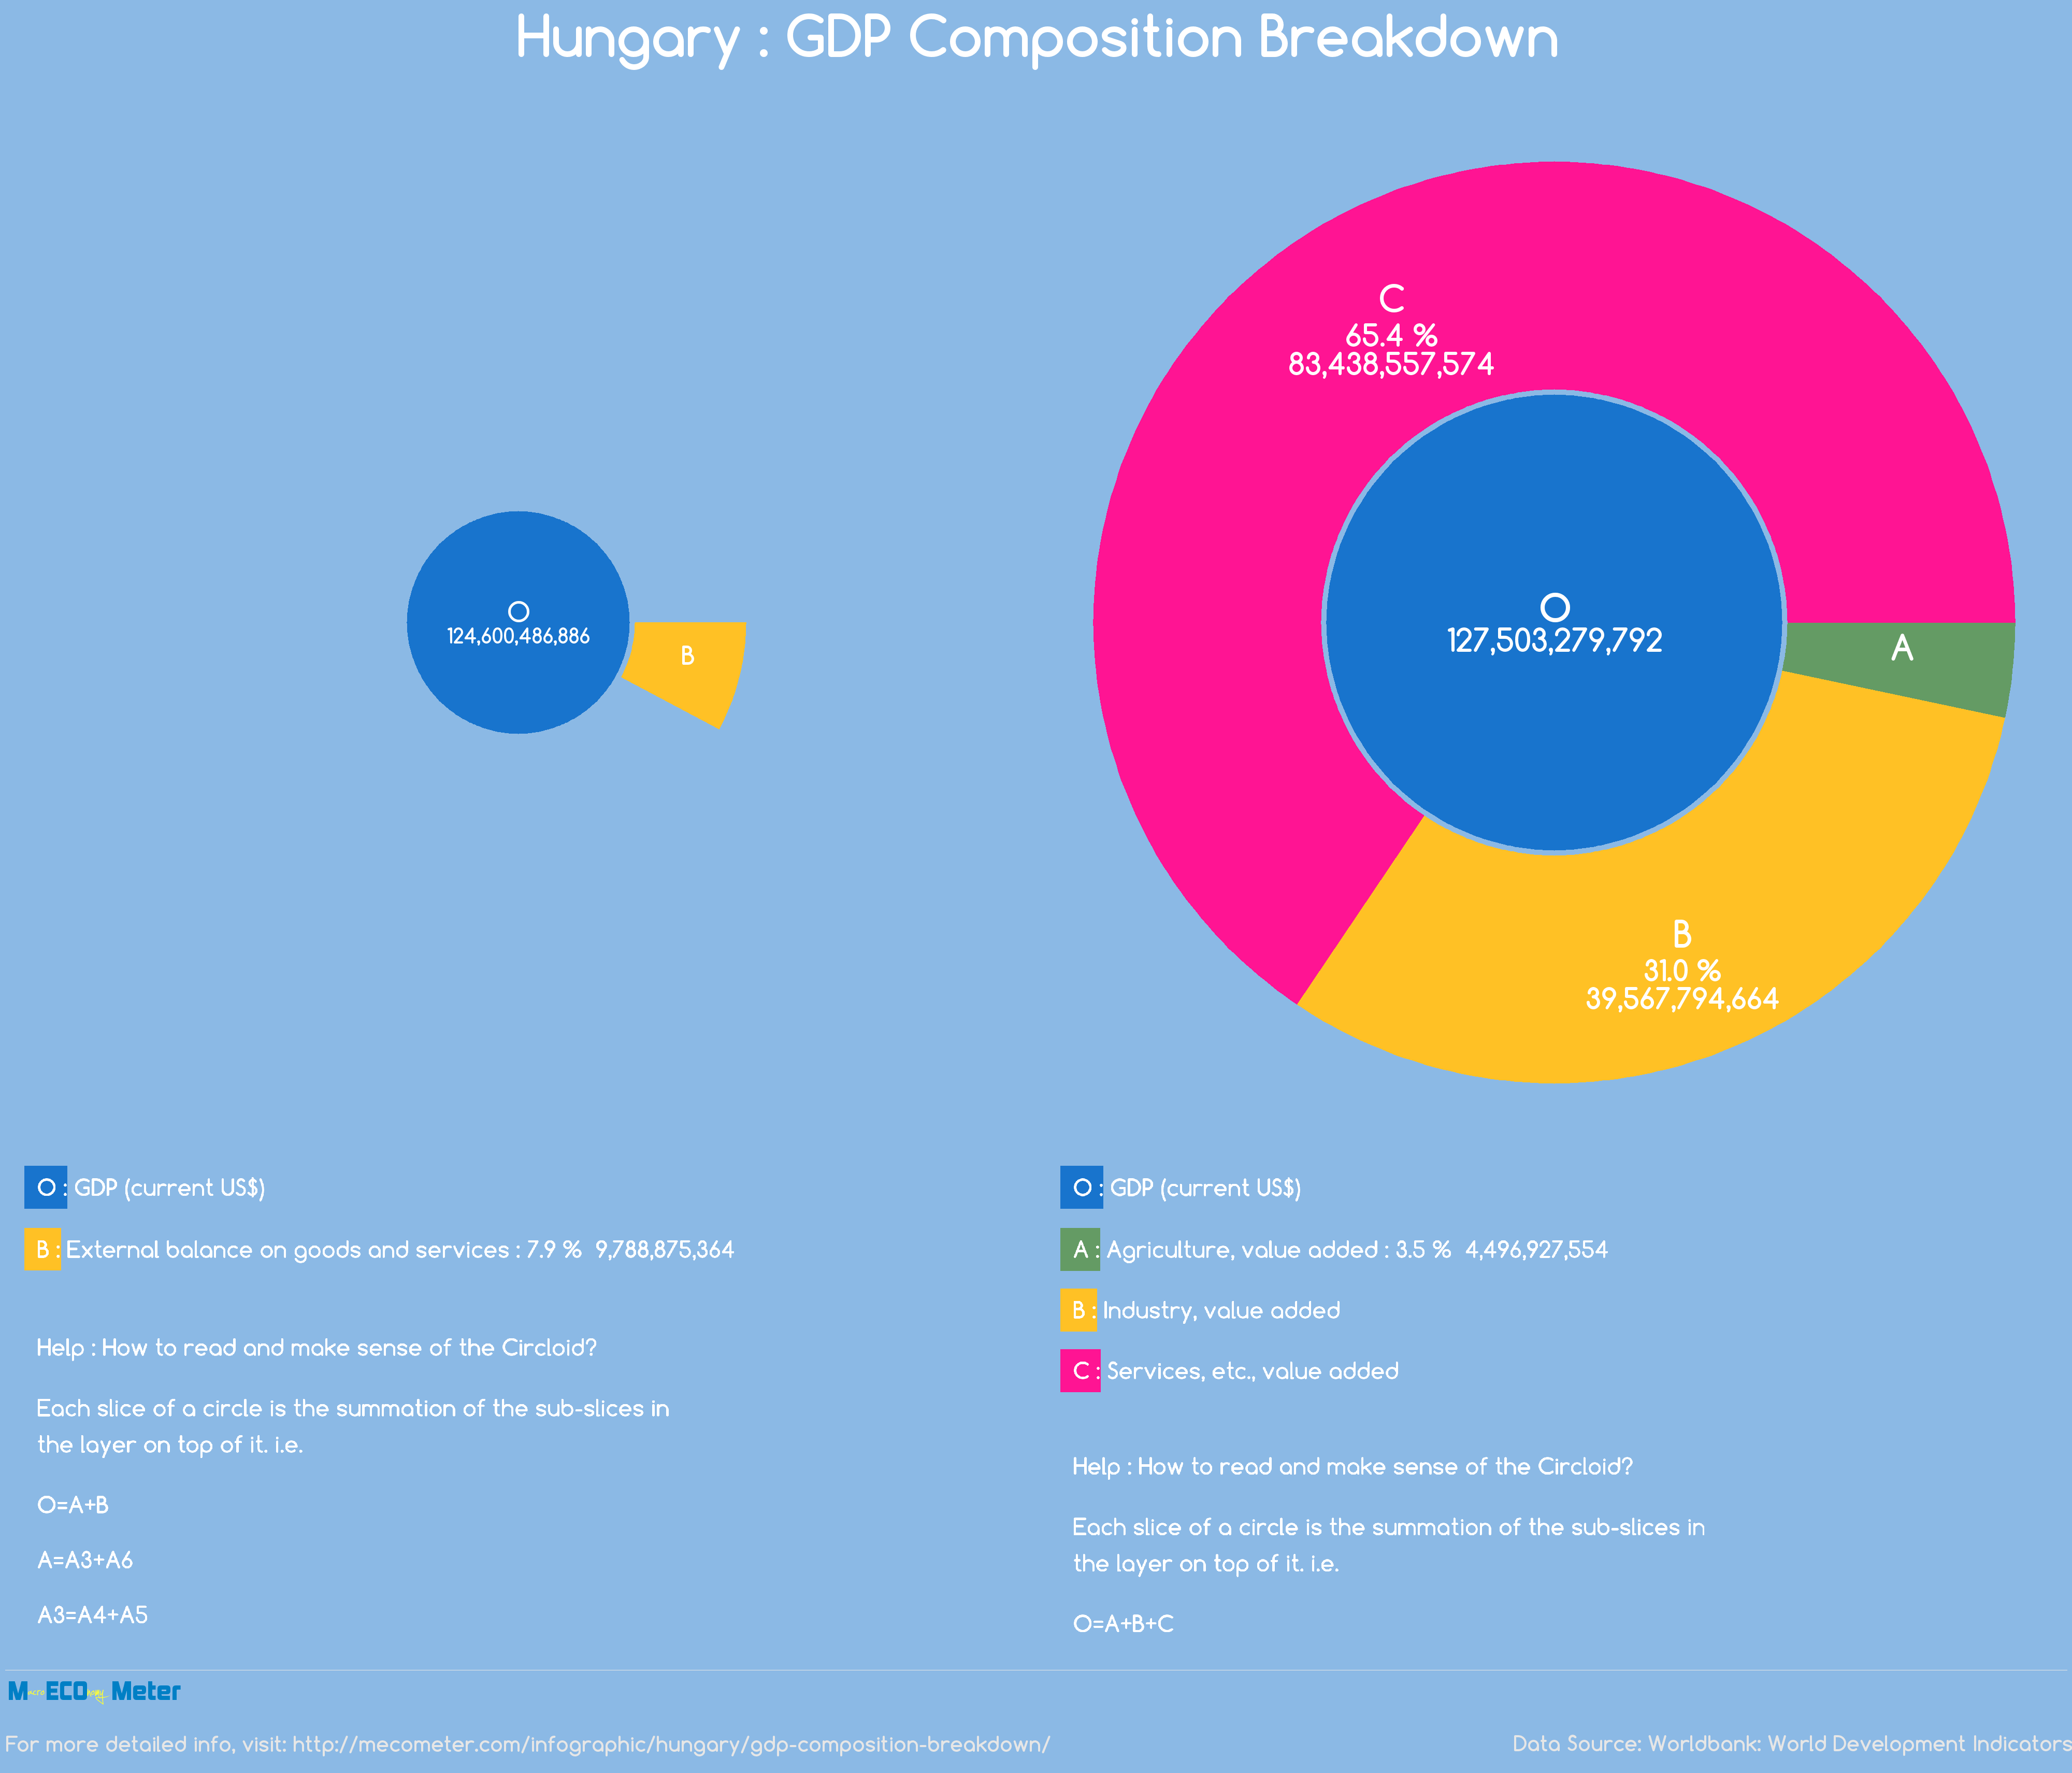 Hungary : GDP Composition Breakdown